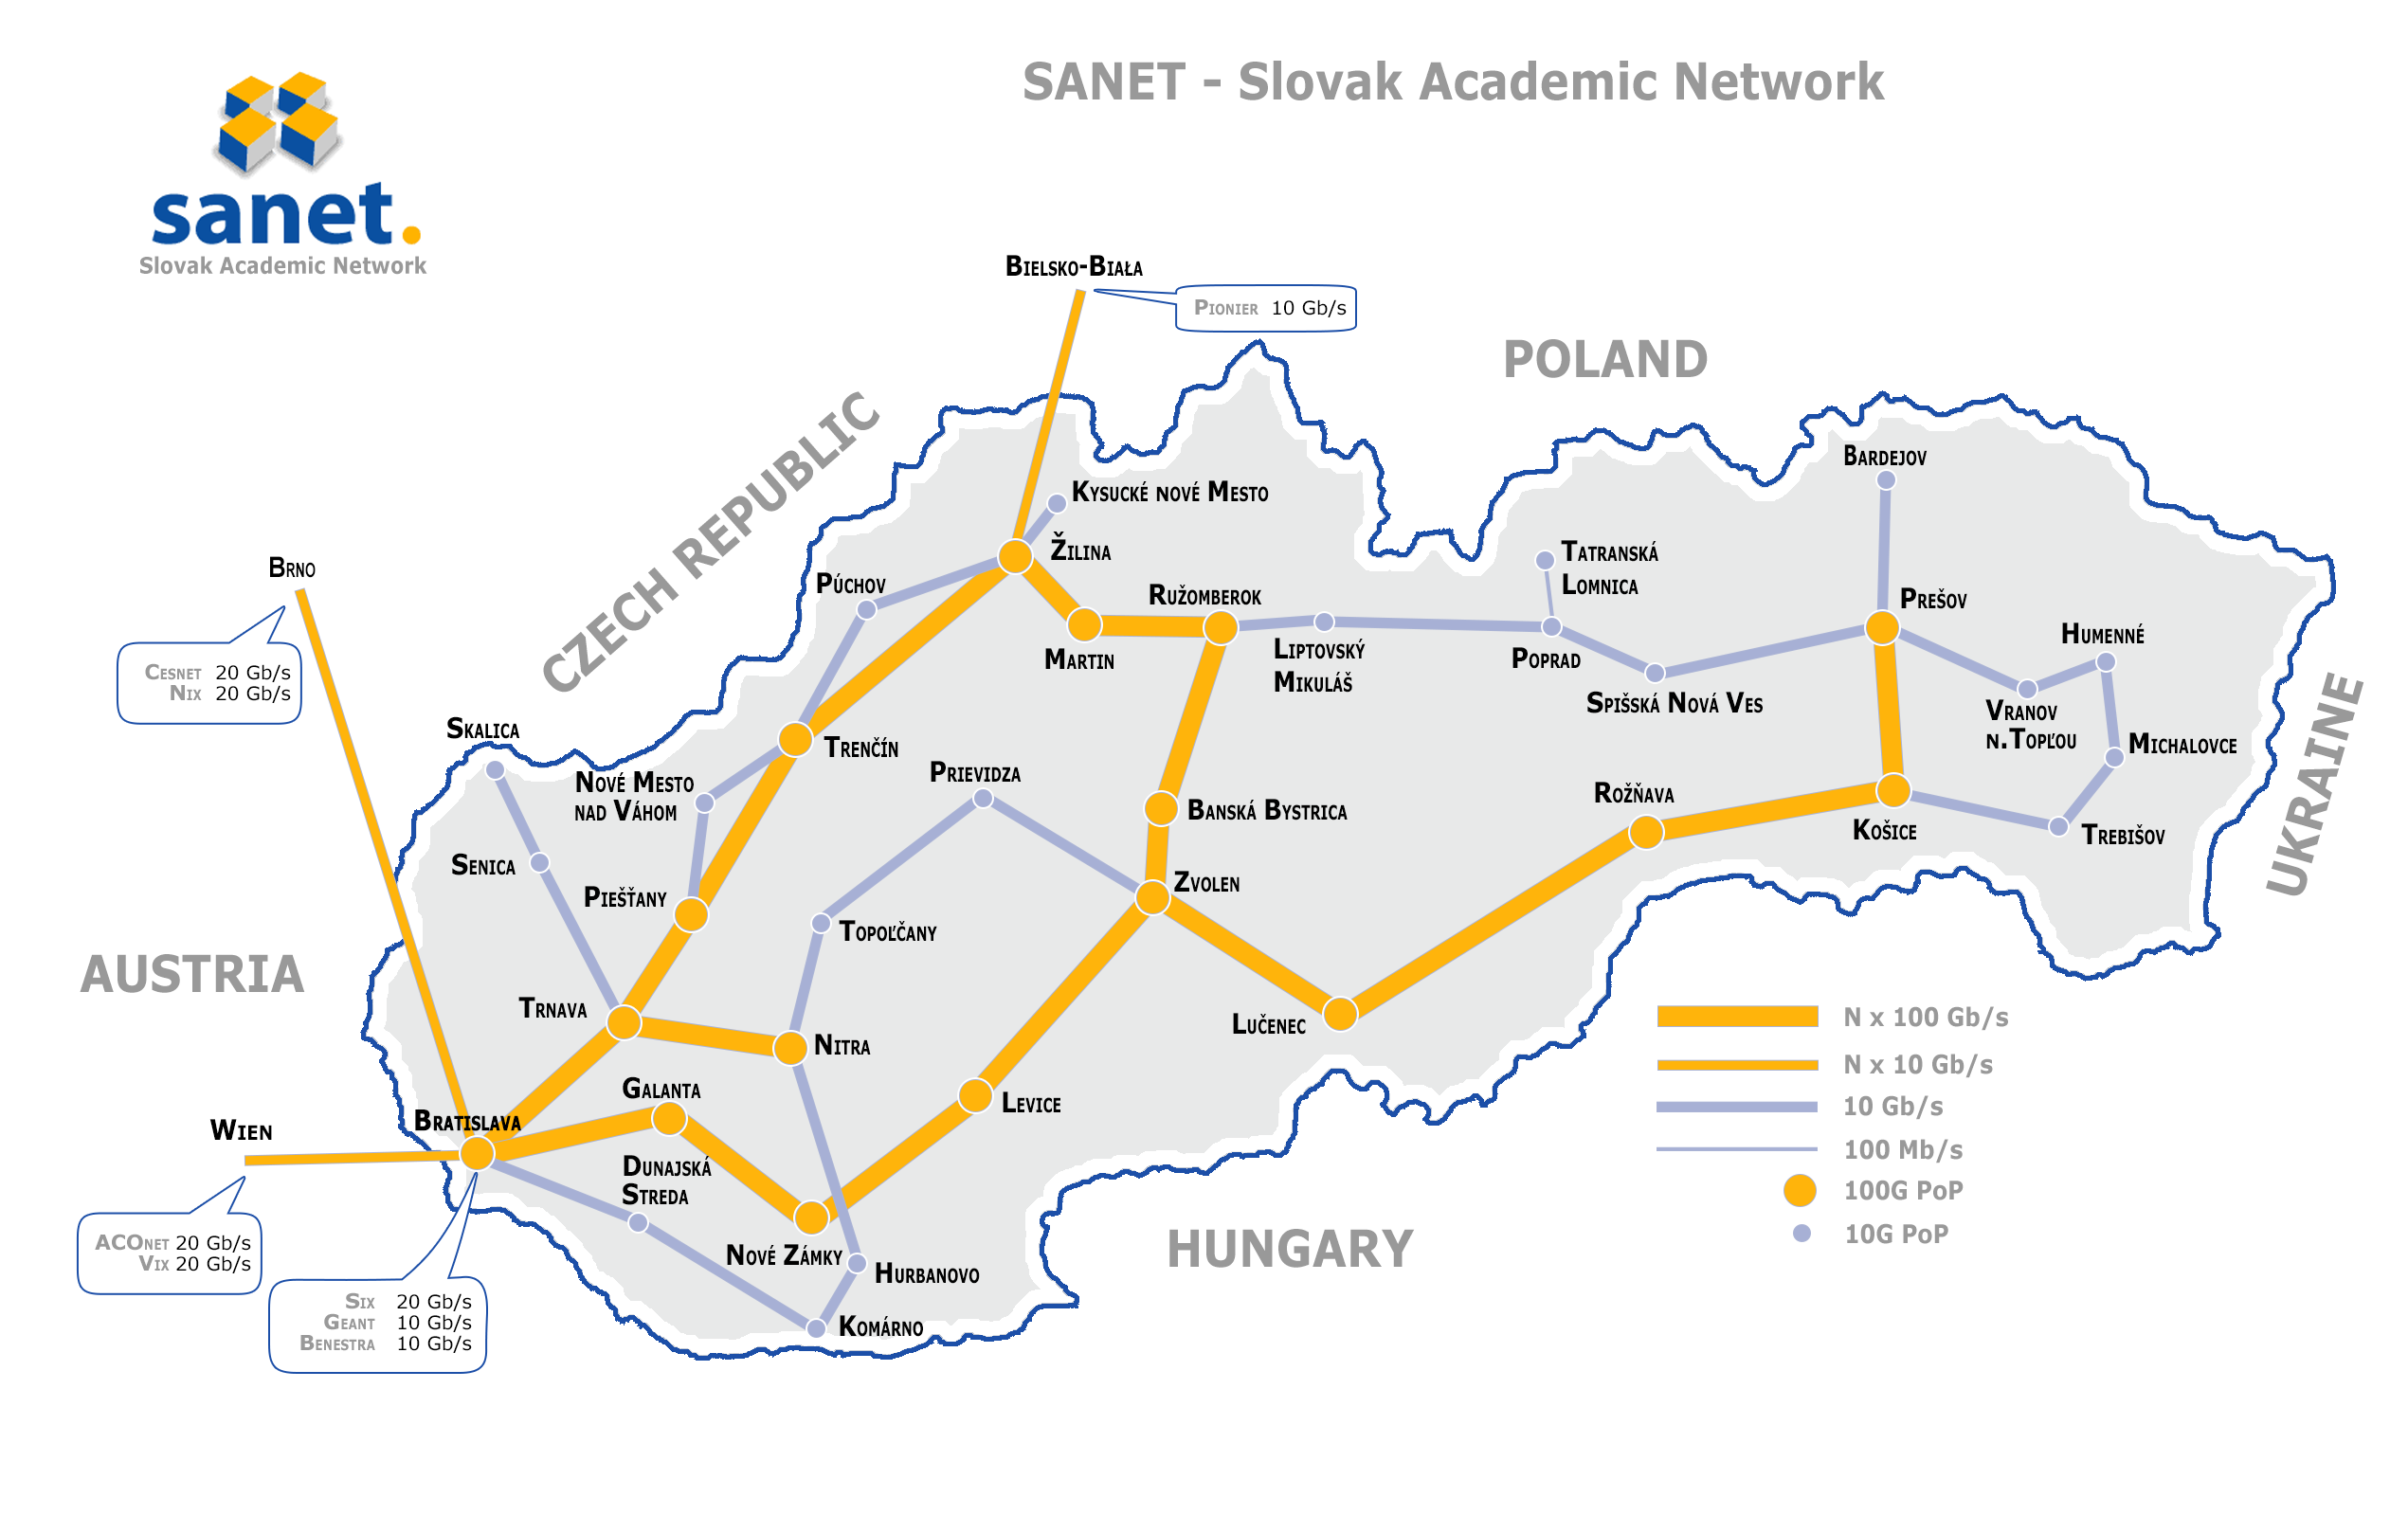 Network Diagram of SANET's Recently-deployed National Research and Education Transport Network Backbone across the Slovak Republic